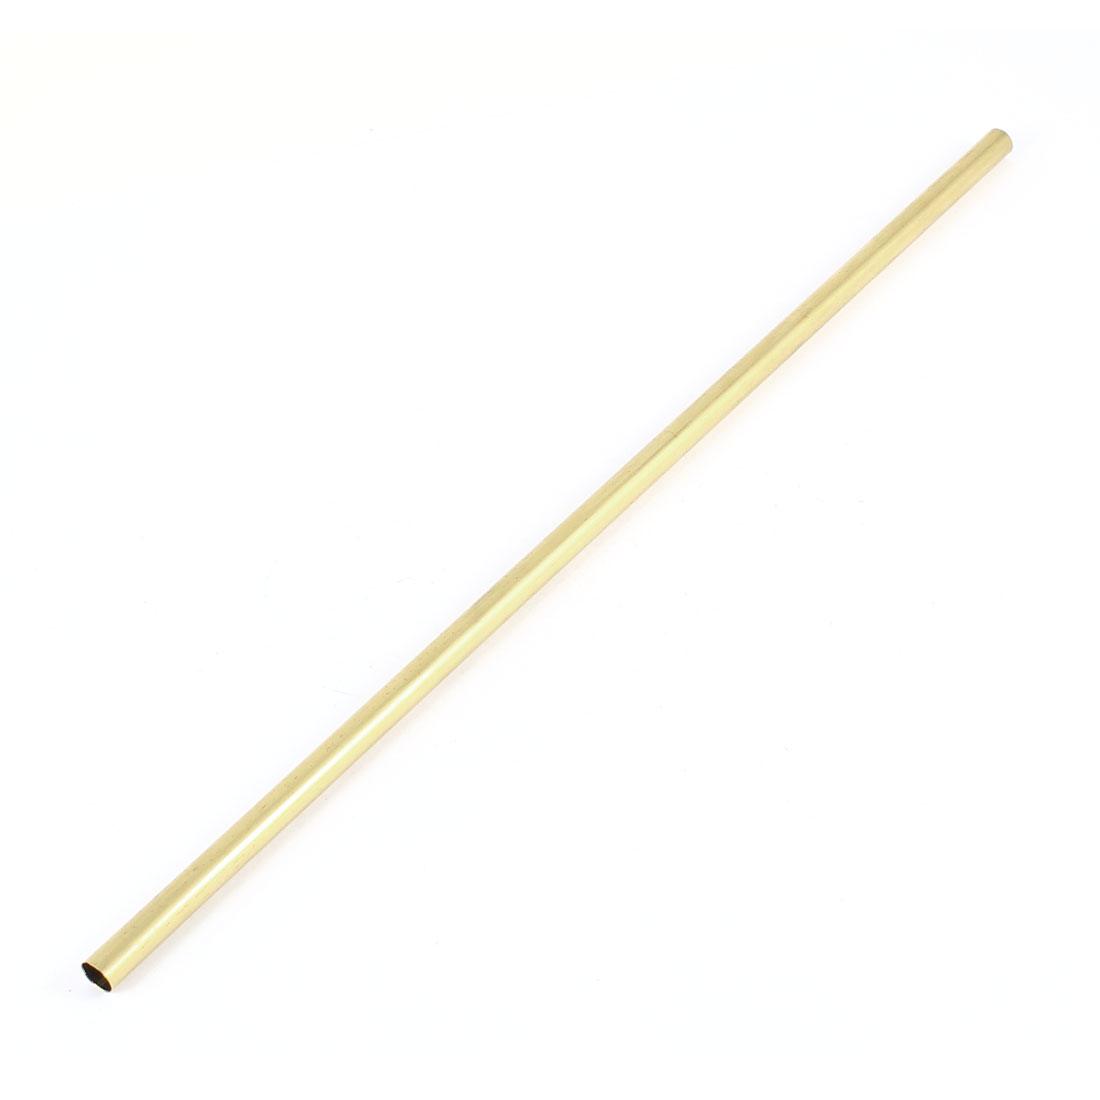 Replacing Parts Round RC Model Boat Flex Shaft Copper Outside Tube 6.5mm x 7mm x 300mm